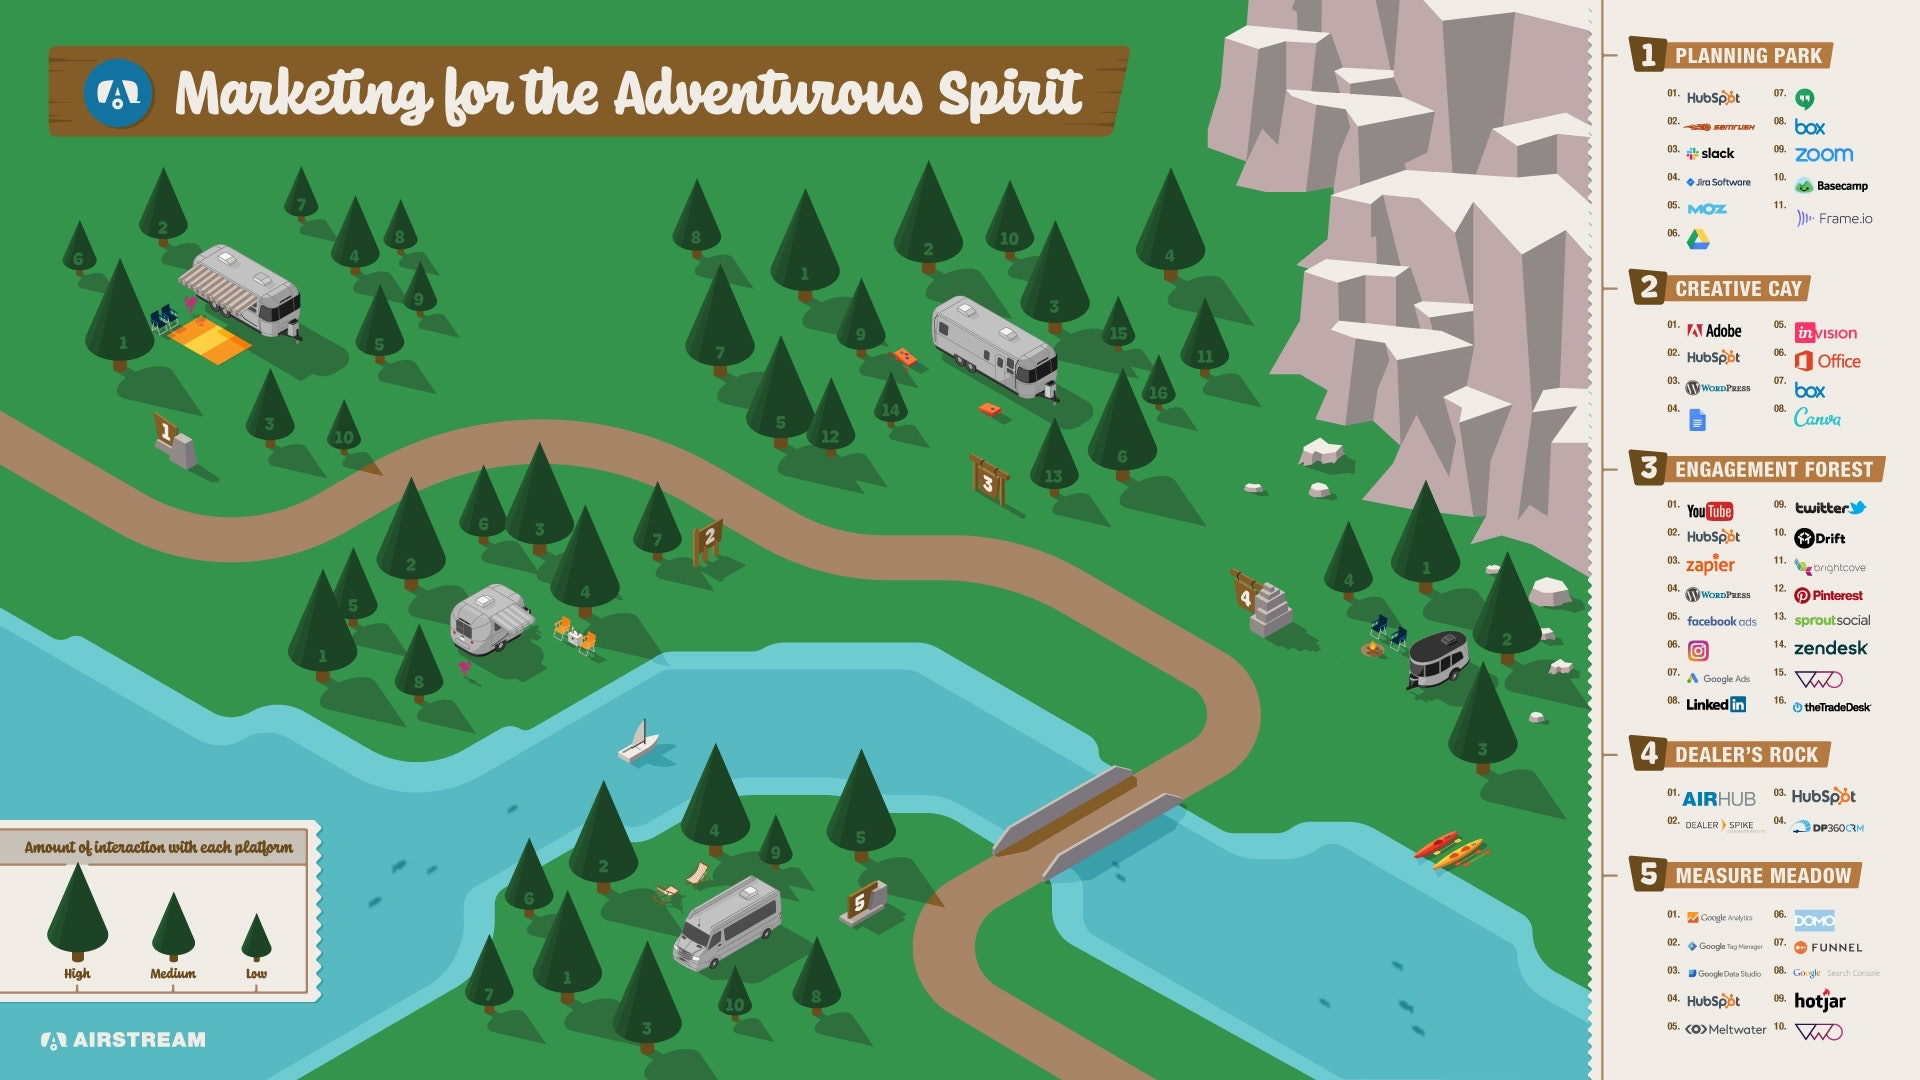 Park Map Illustration with Five Campsites with Airstream Travel Trailers and Marketing Technology